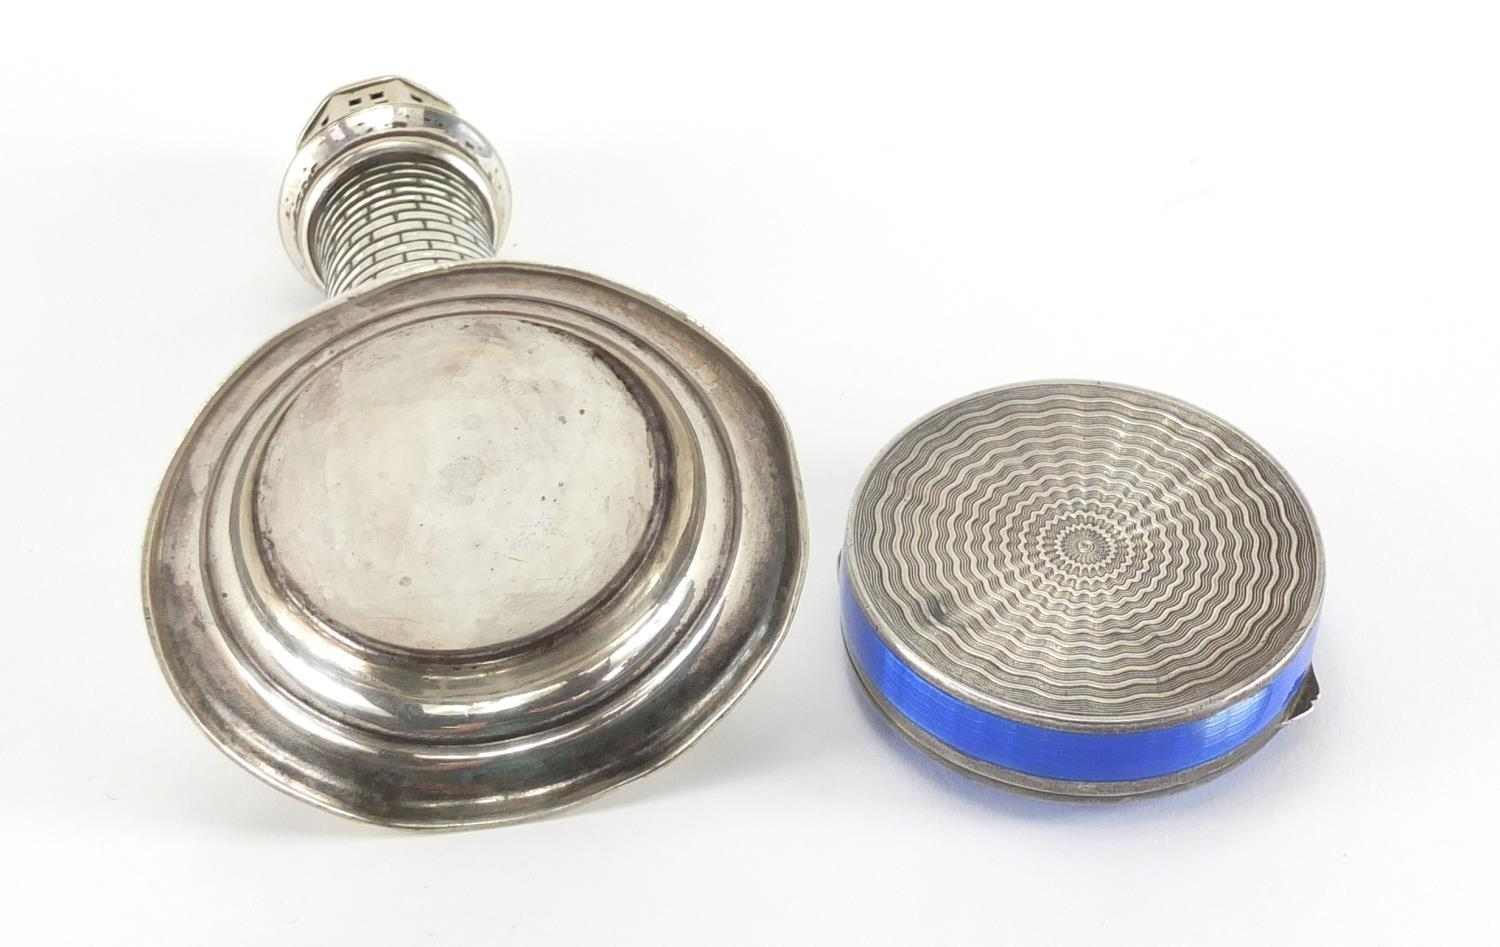 Lot 52 - Circular silver and blue guilloche enamelled trinket and a novelty silver plated caster in the